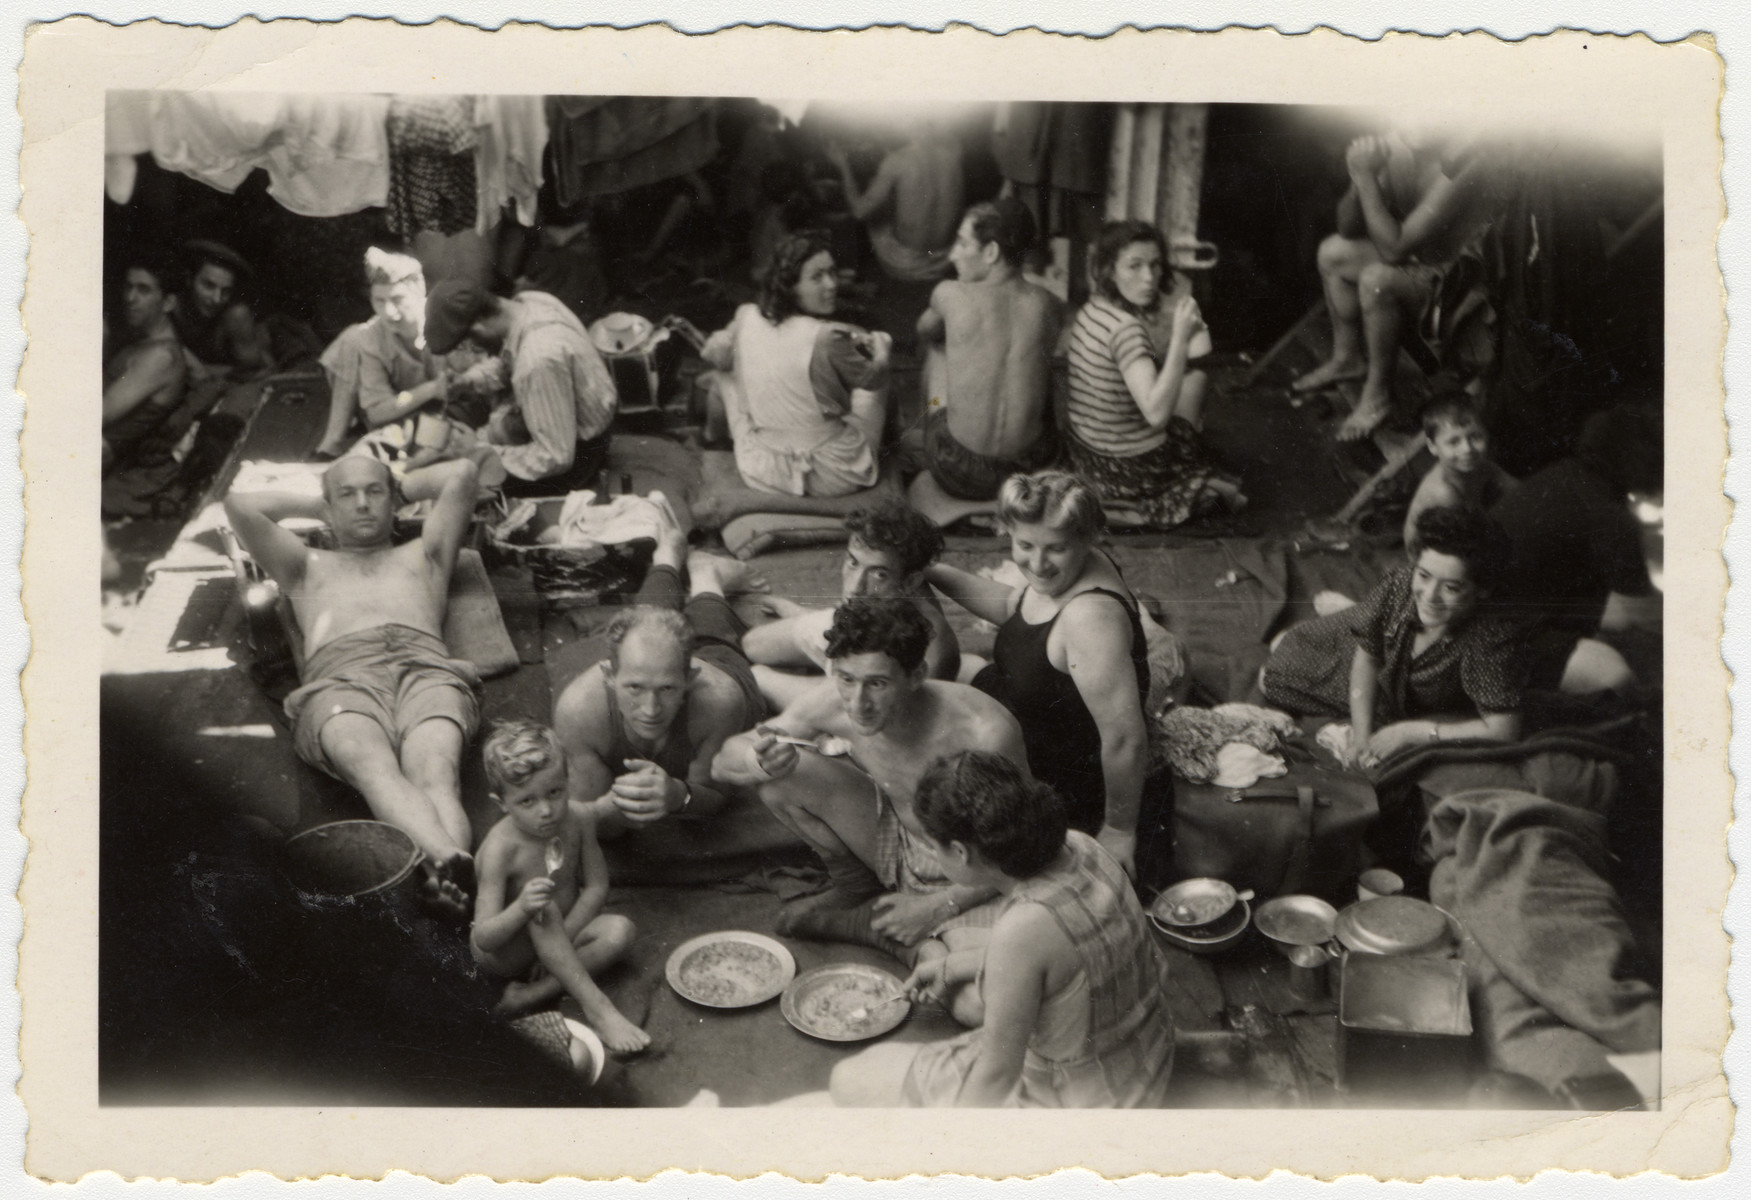 Passengers on board the Exodus relax and eat a meal while en route to Palestine before the British navy intercepted the ship.  Pictured on the far right wearing a dress and leaning on her side is Frances Kanenberg.